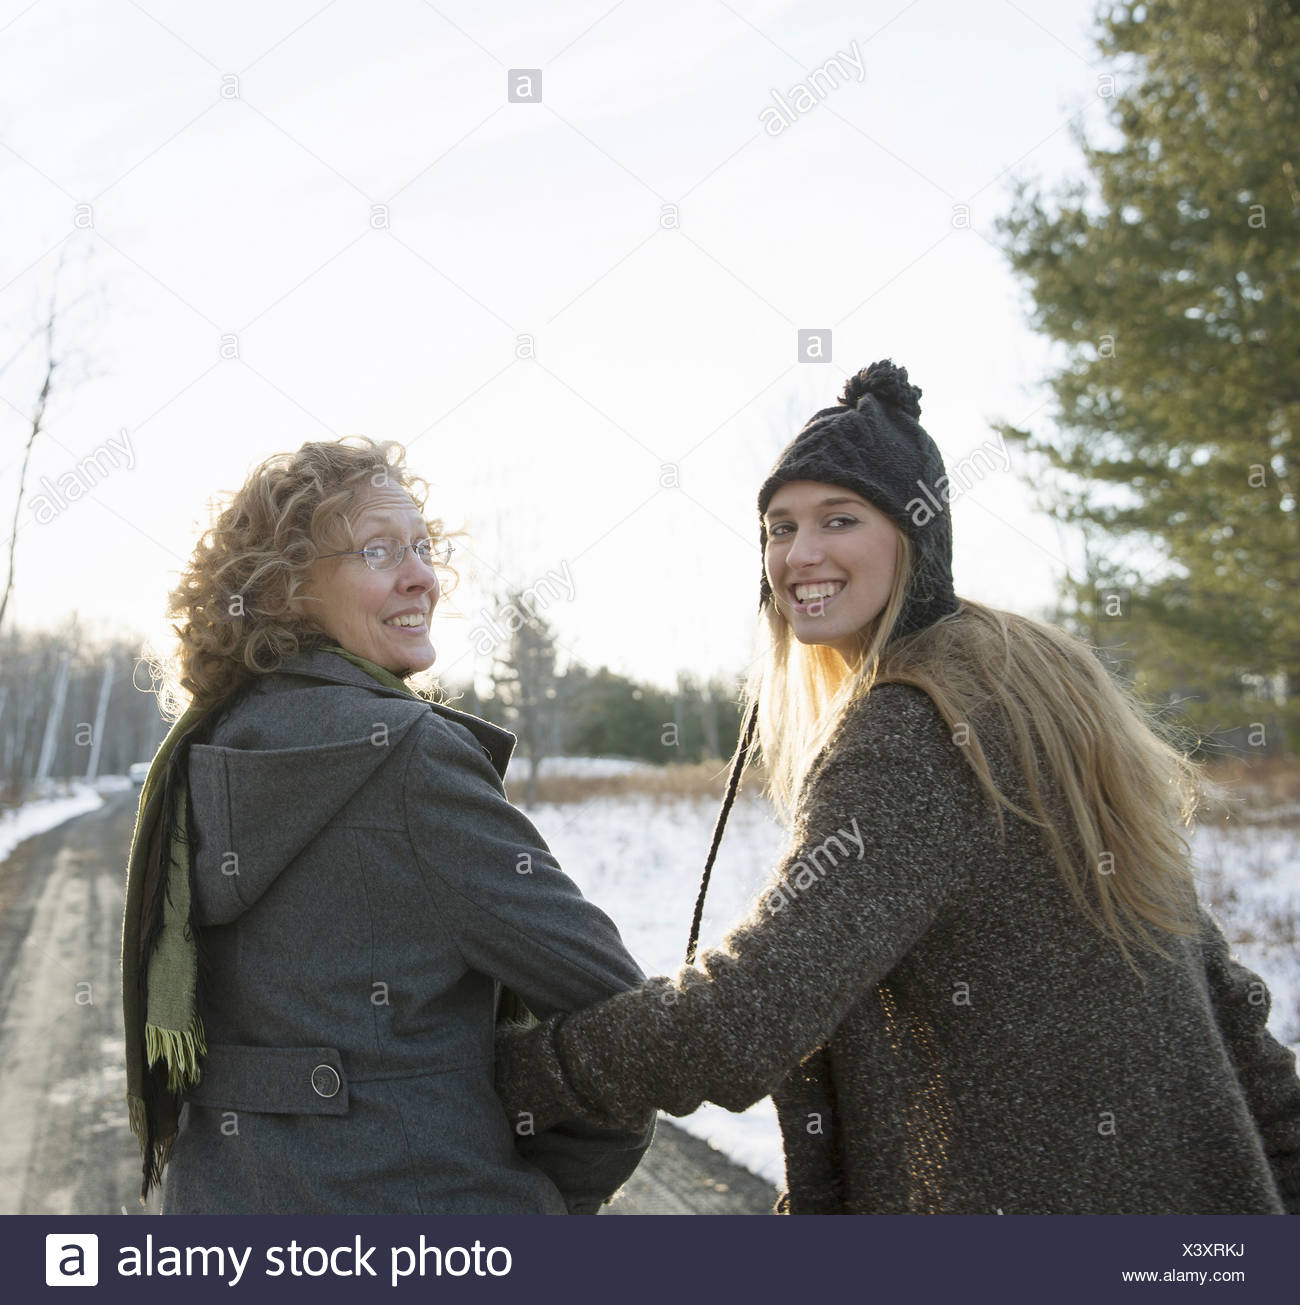 A mother and daughter arm in arm walking along a path and looking over their shoulders - Stock Image